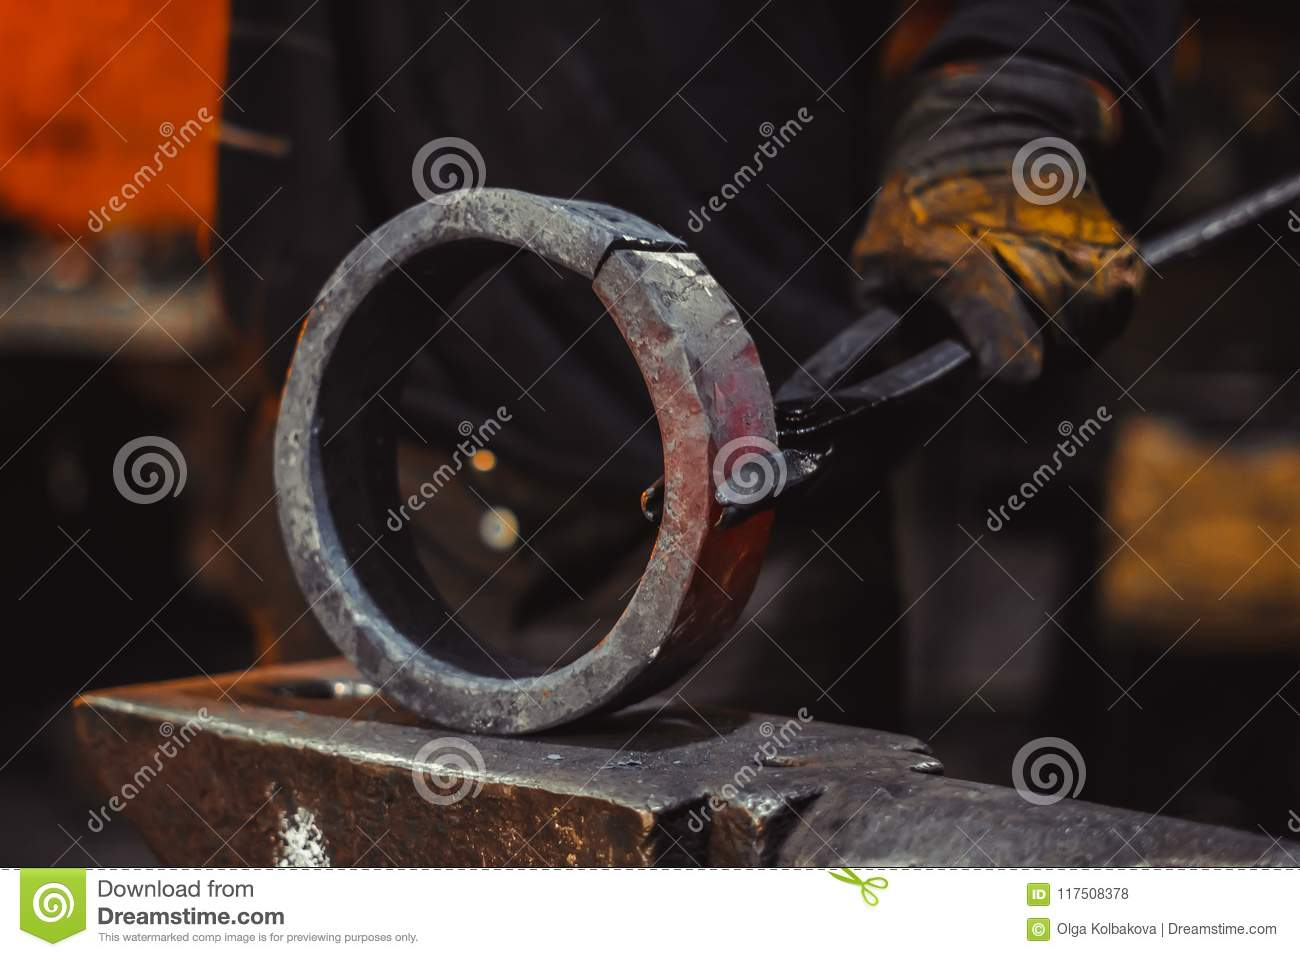 Hot item at the forge stock photo  Image of heavy, factory